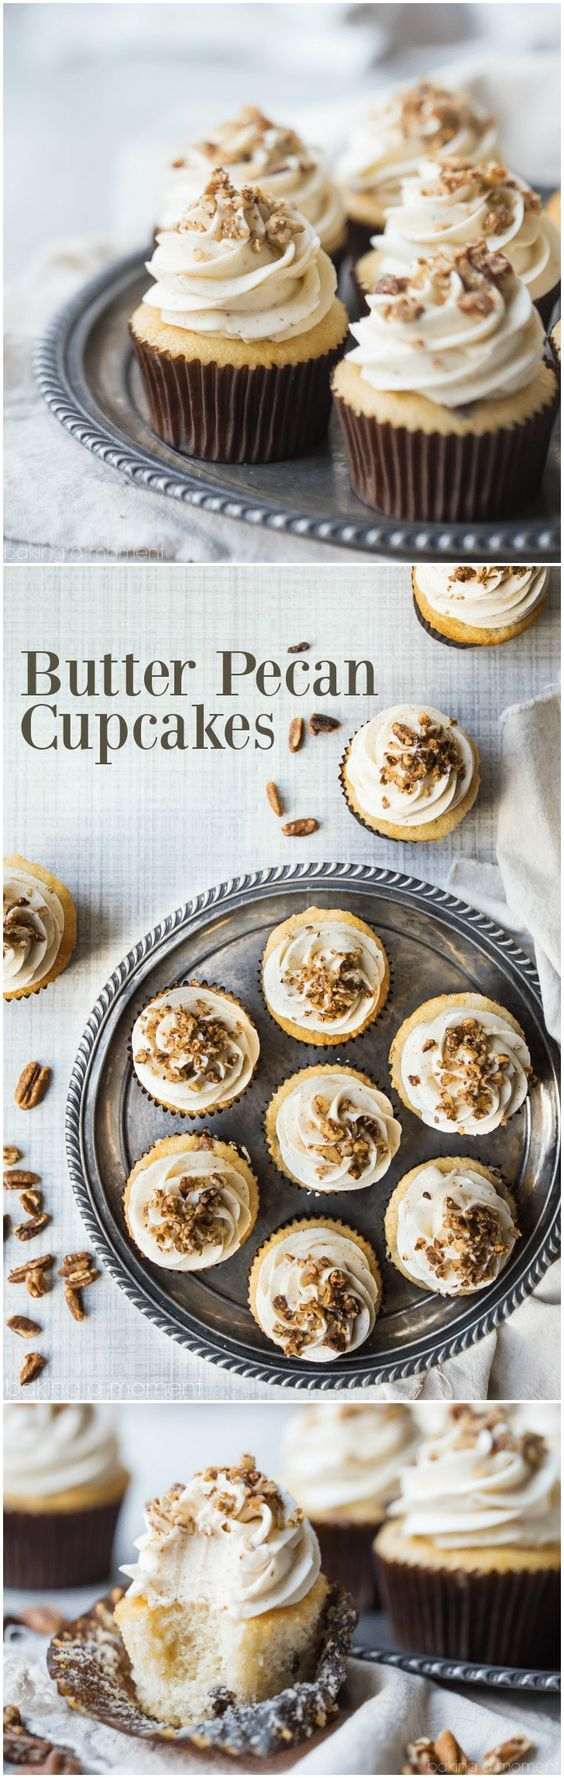 Butter Pecan Cupcakes: all the sweet, buttery taste of that classic ice cream flavor, in a cupcake! Perfect with coffee or a glass of milk. #butter #pecan #cupcake #dessert #food via @bakingamoment